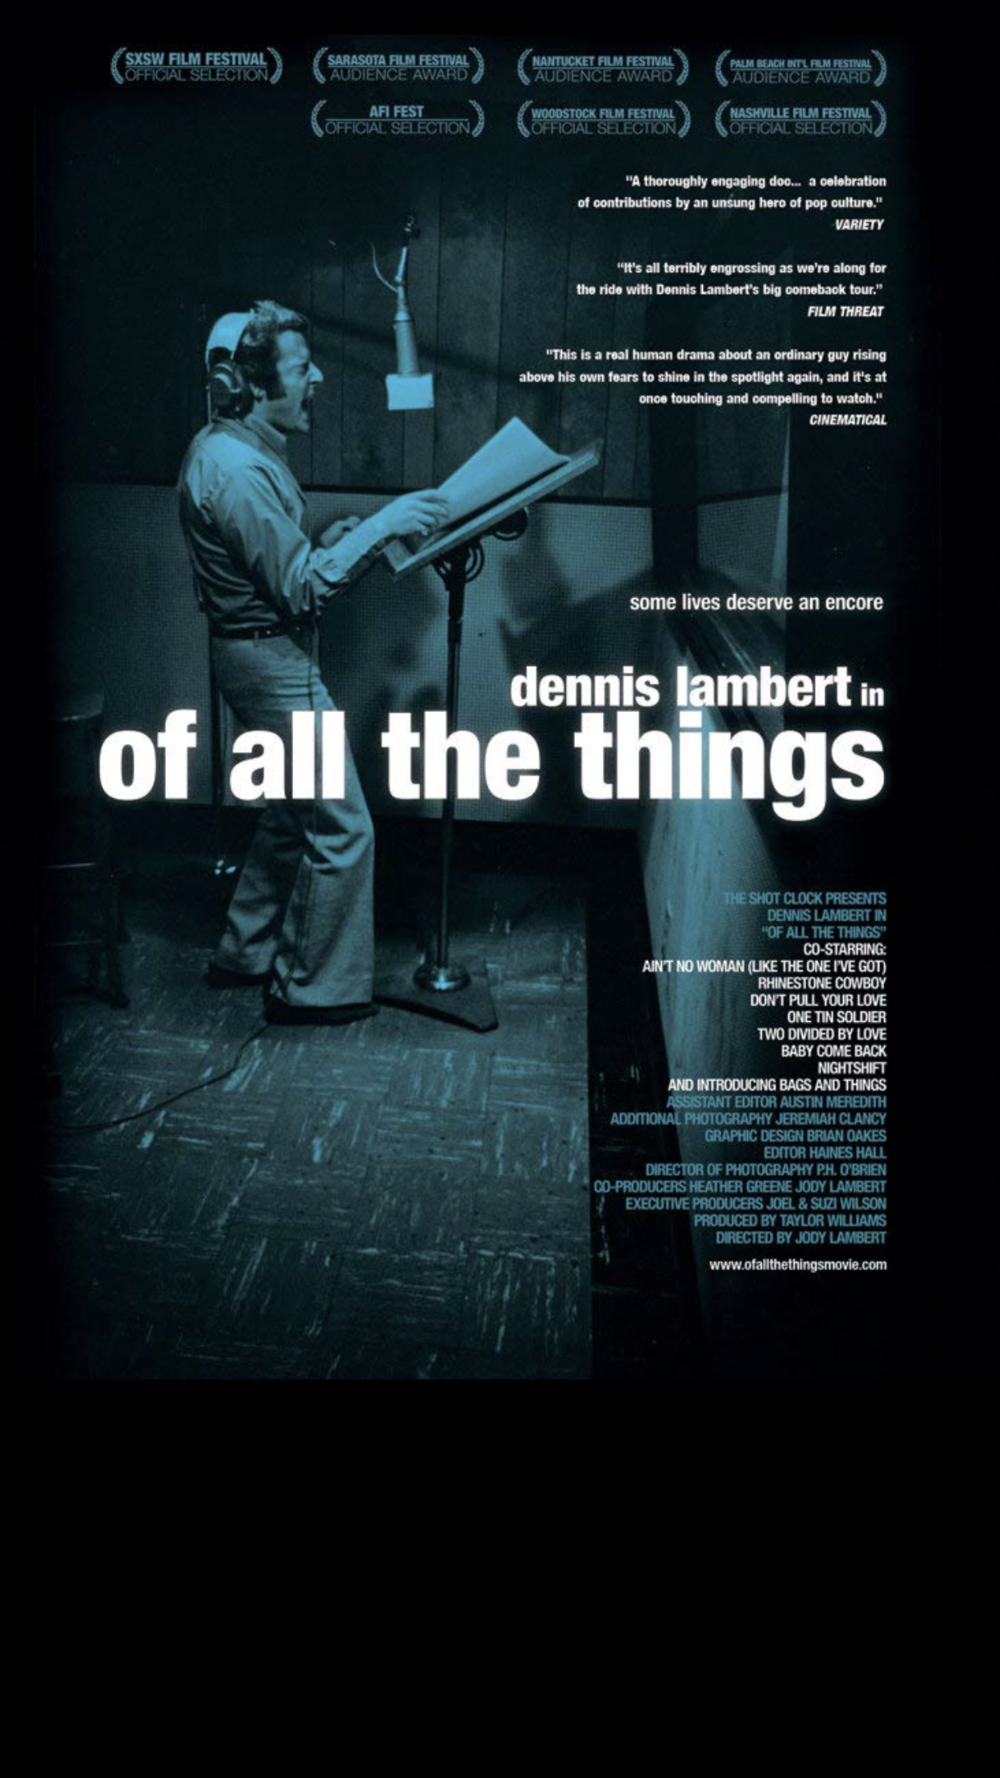 Of All The Things - 2012 (Feature Documentary) – 1h 25m Dennis Lambert was one of the most successful and diverse songwriter/producers of the '70s and '80s, with hits like